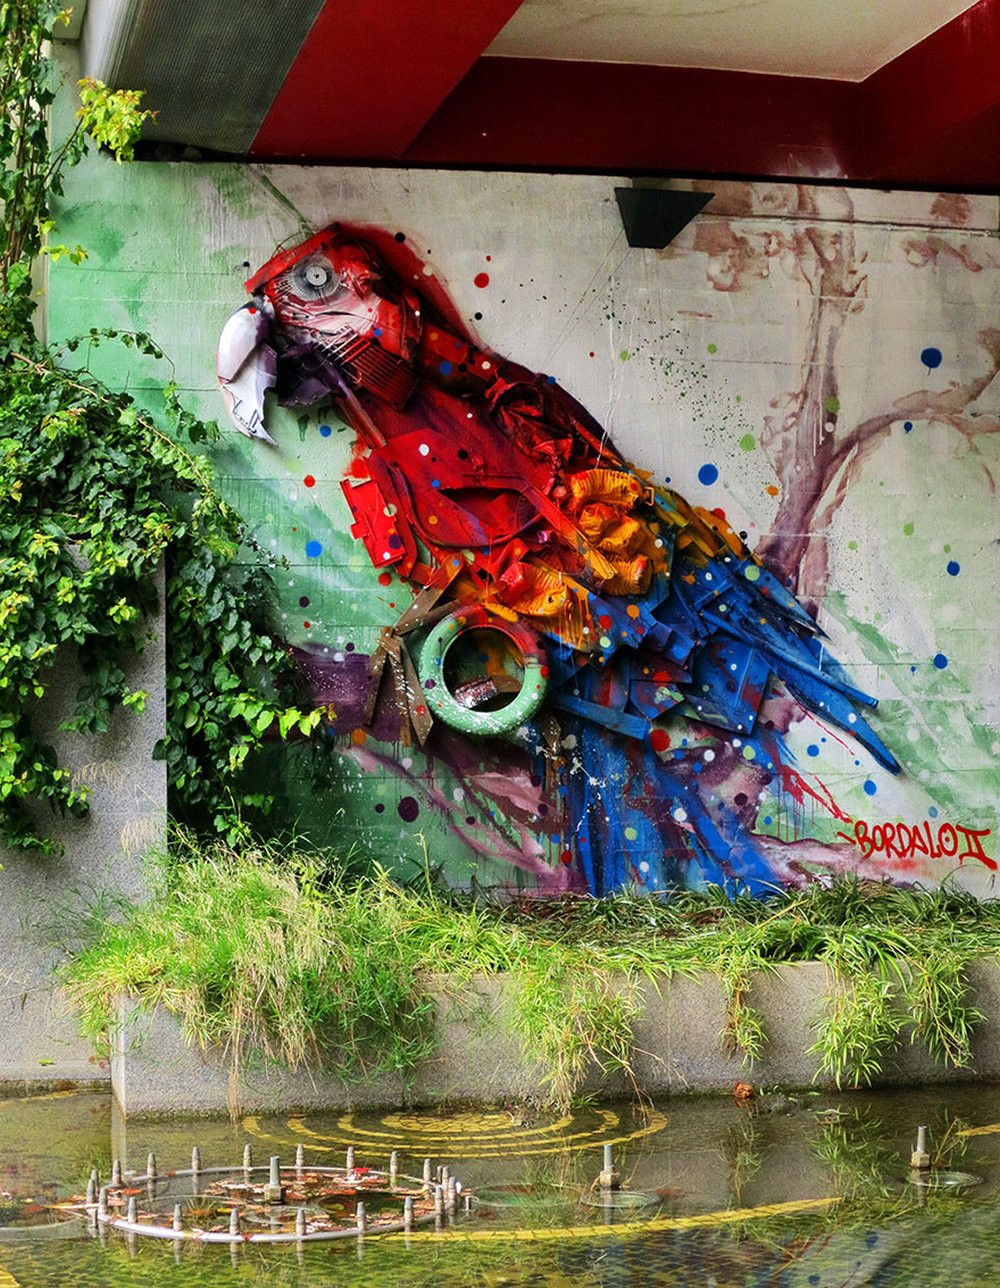 Bordalo II - Street Art - 41lk78